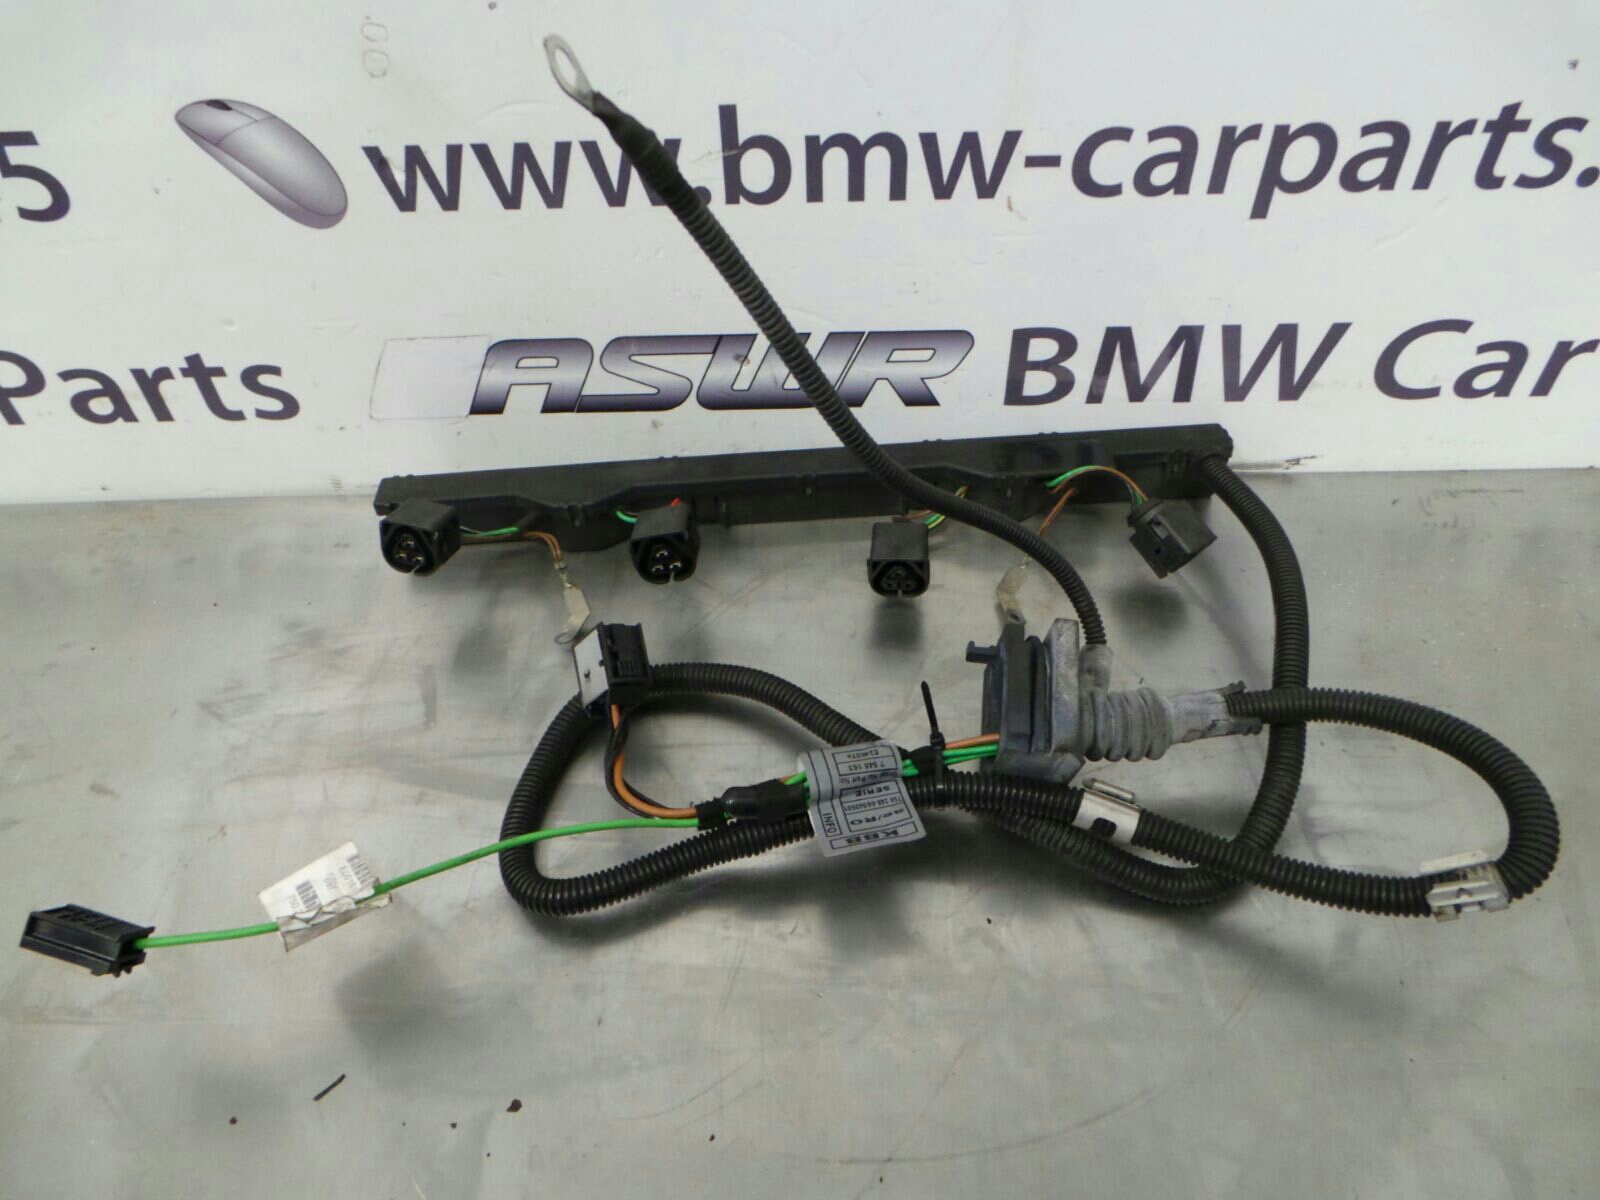 bmw e87 1 series ignition coil wiring 12517549246 breaking for used briggs and stratton coil wiring bmw e87 1 series ignition coil wiring 12517549246